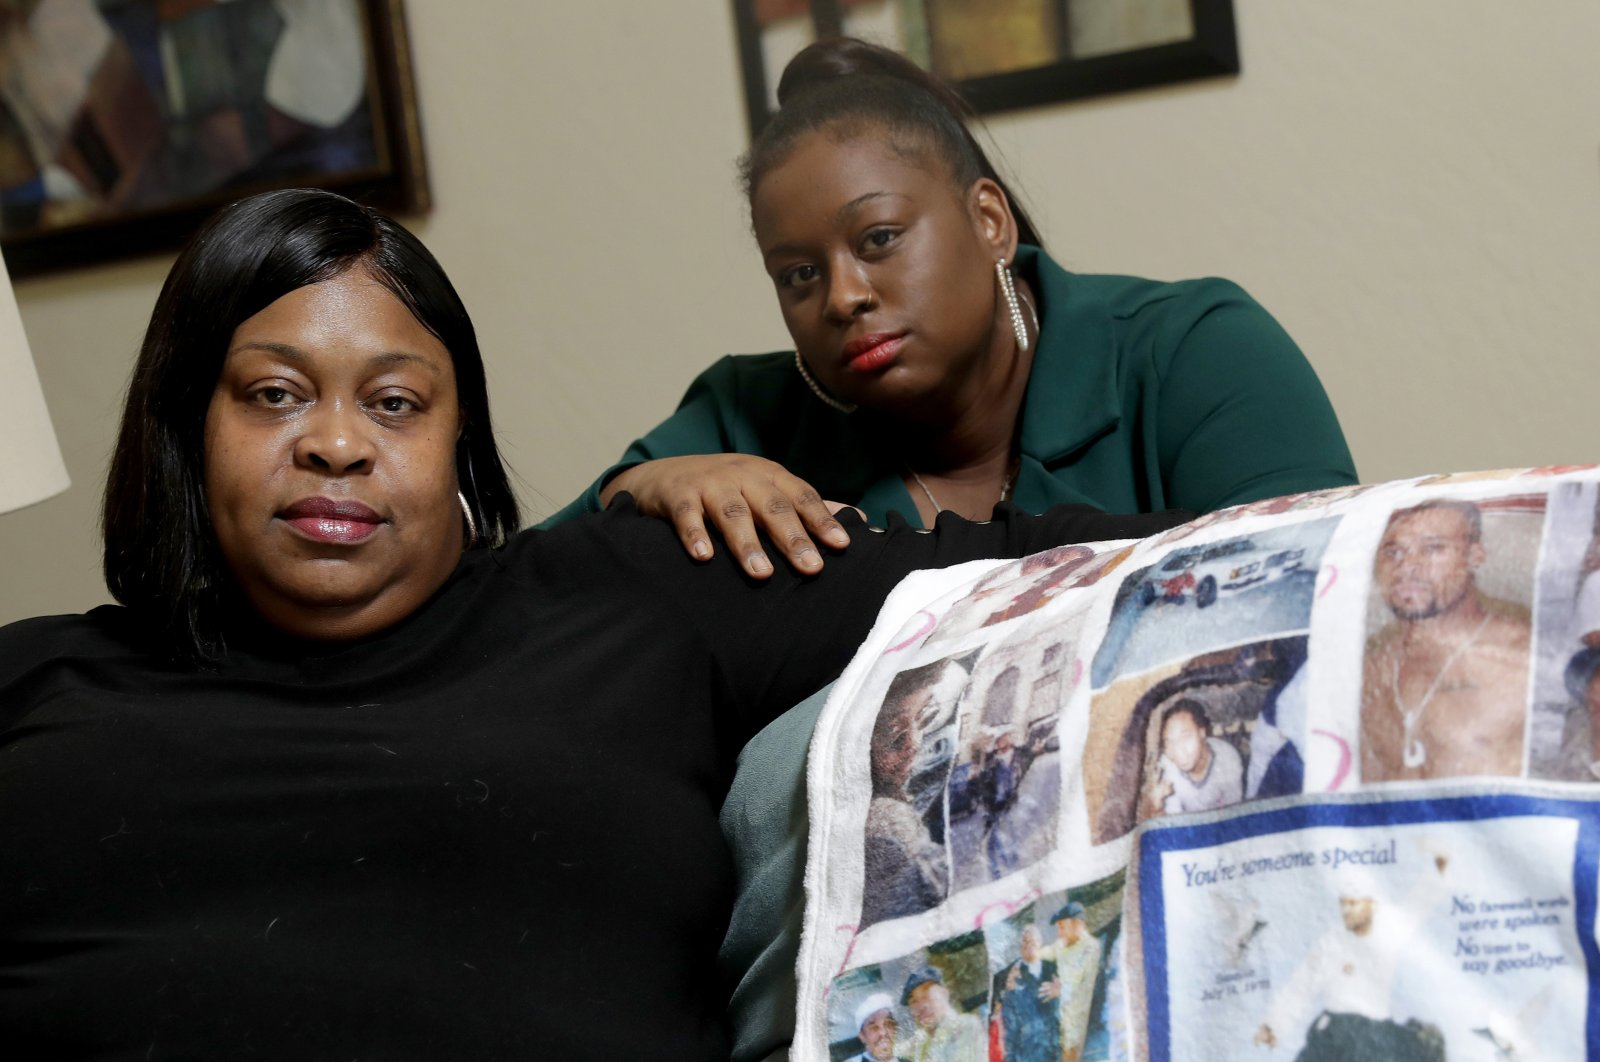 In this June 5, 2020, file photo, Mussallina Muhaymin, left, and Zarinah Tavares, sisters of Muhammad Abdul Muhaymin Jr., a homeless man who died while in Phoenix police custody, pose in Phoenix. (AP Photo)